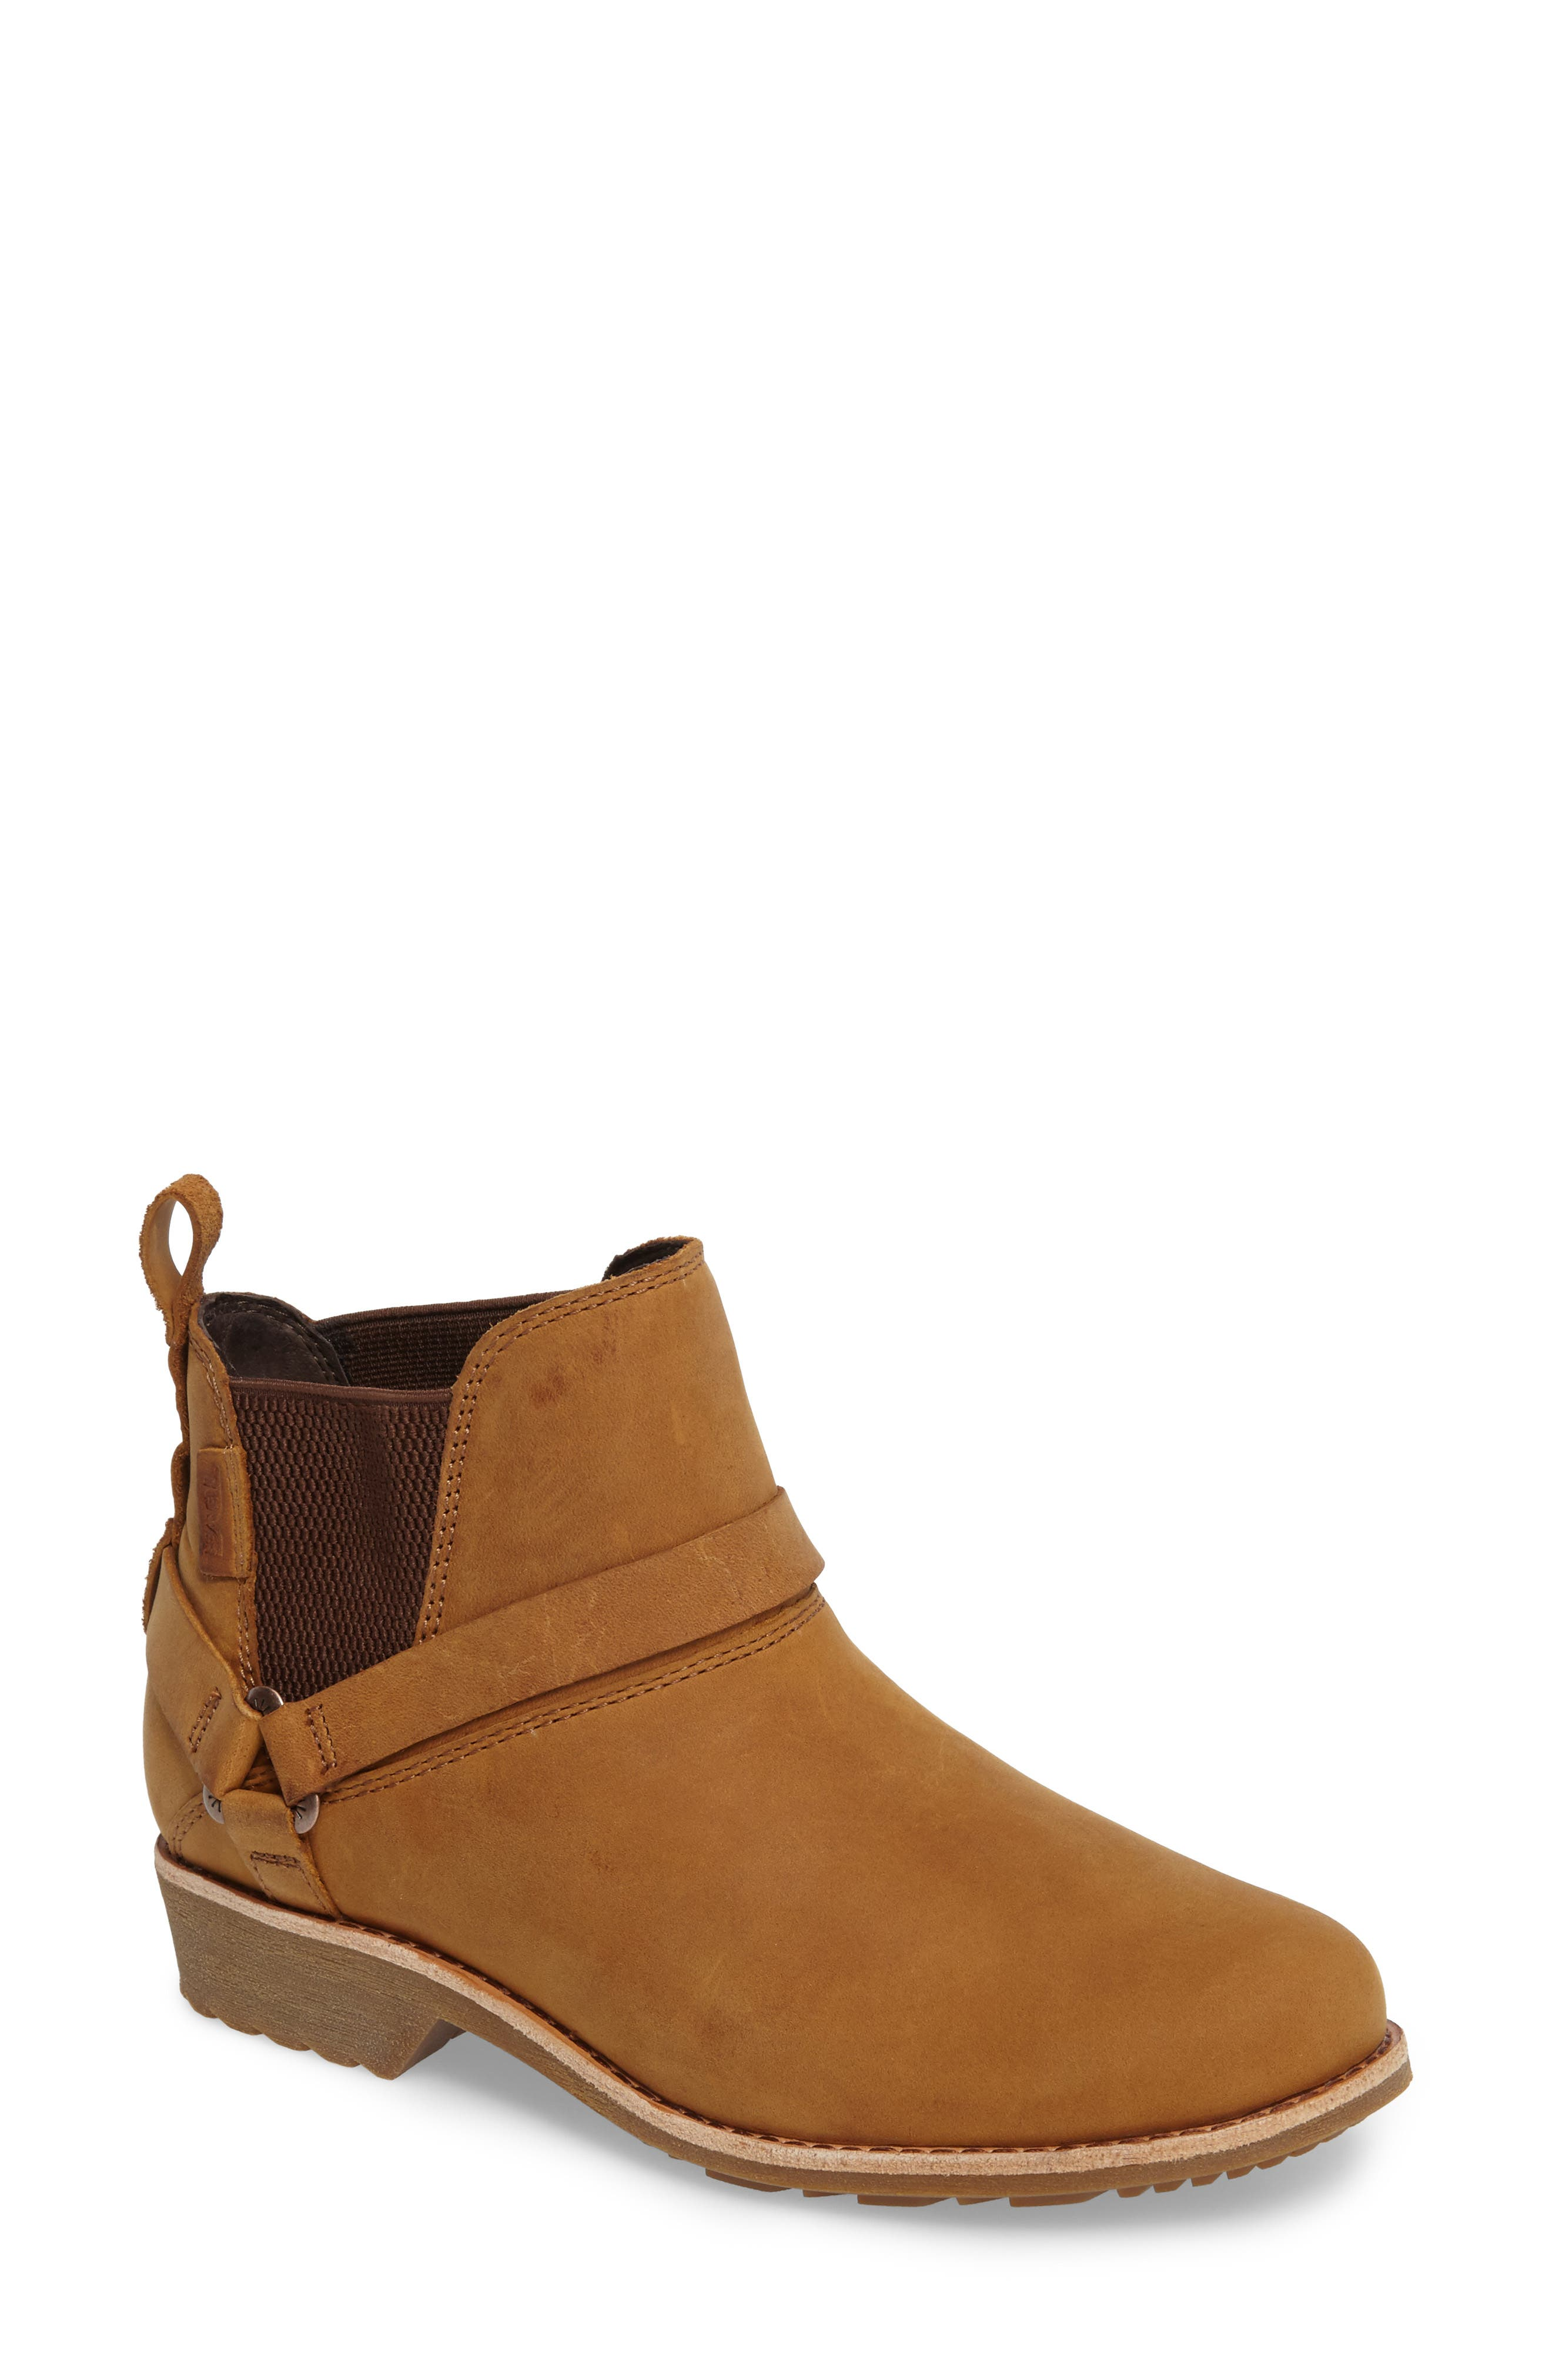 Teva Dina La Vina Dos Waterproof Chelsea Boot (Women)